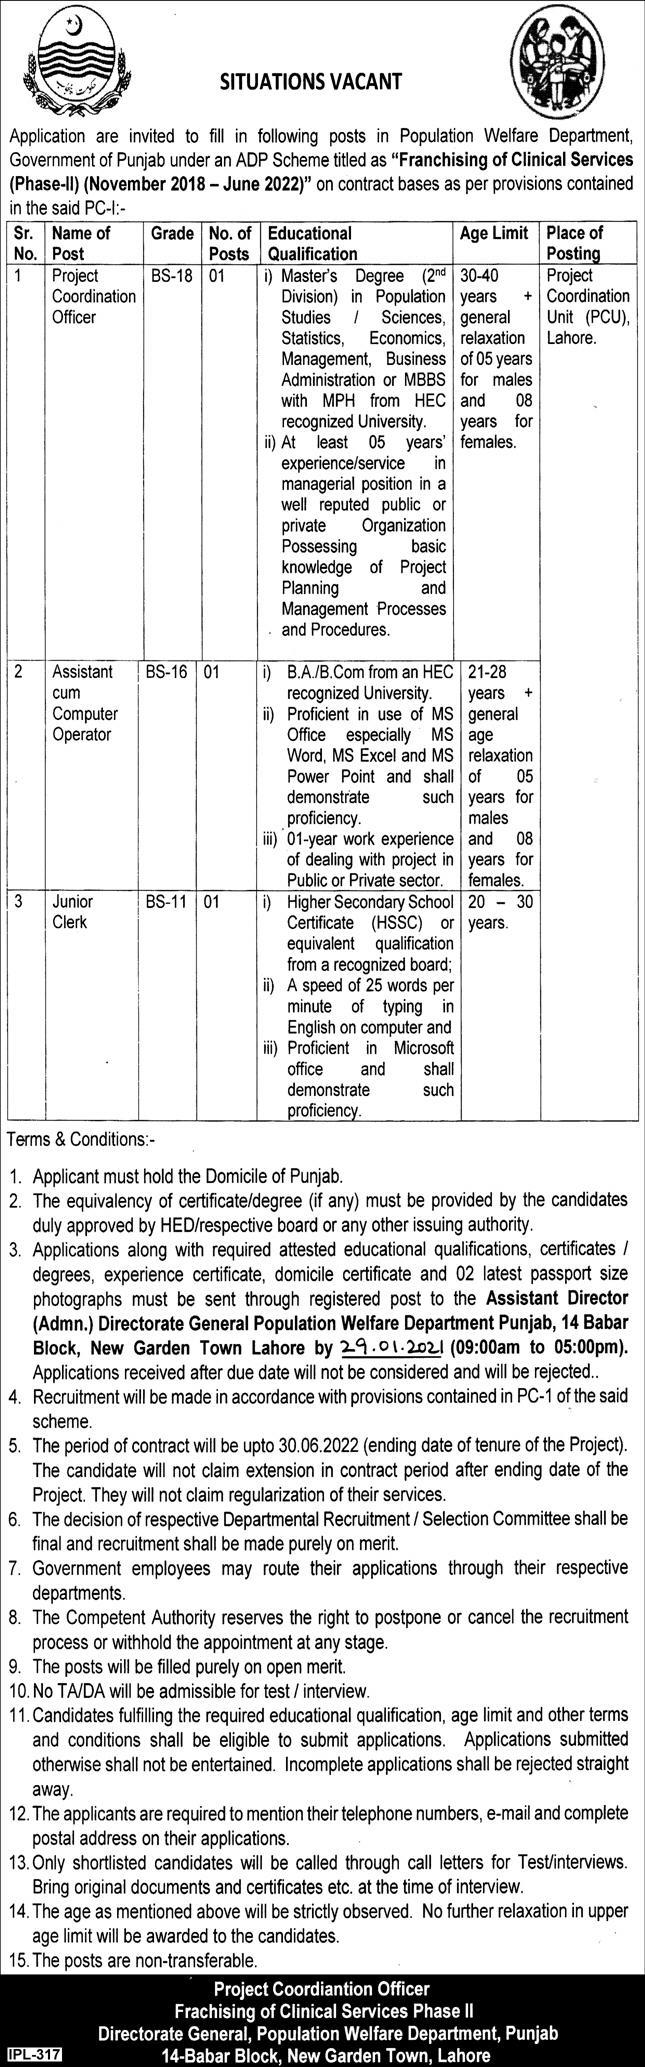 Population Welfare Department jobs newspaper ad for Junior Clerk in Lahore on 2021-01-14